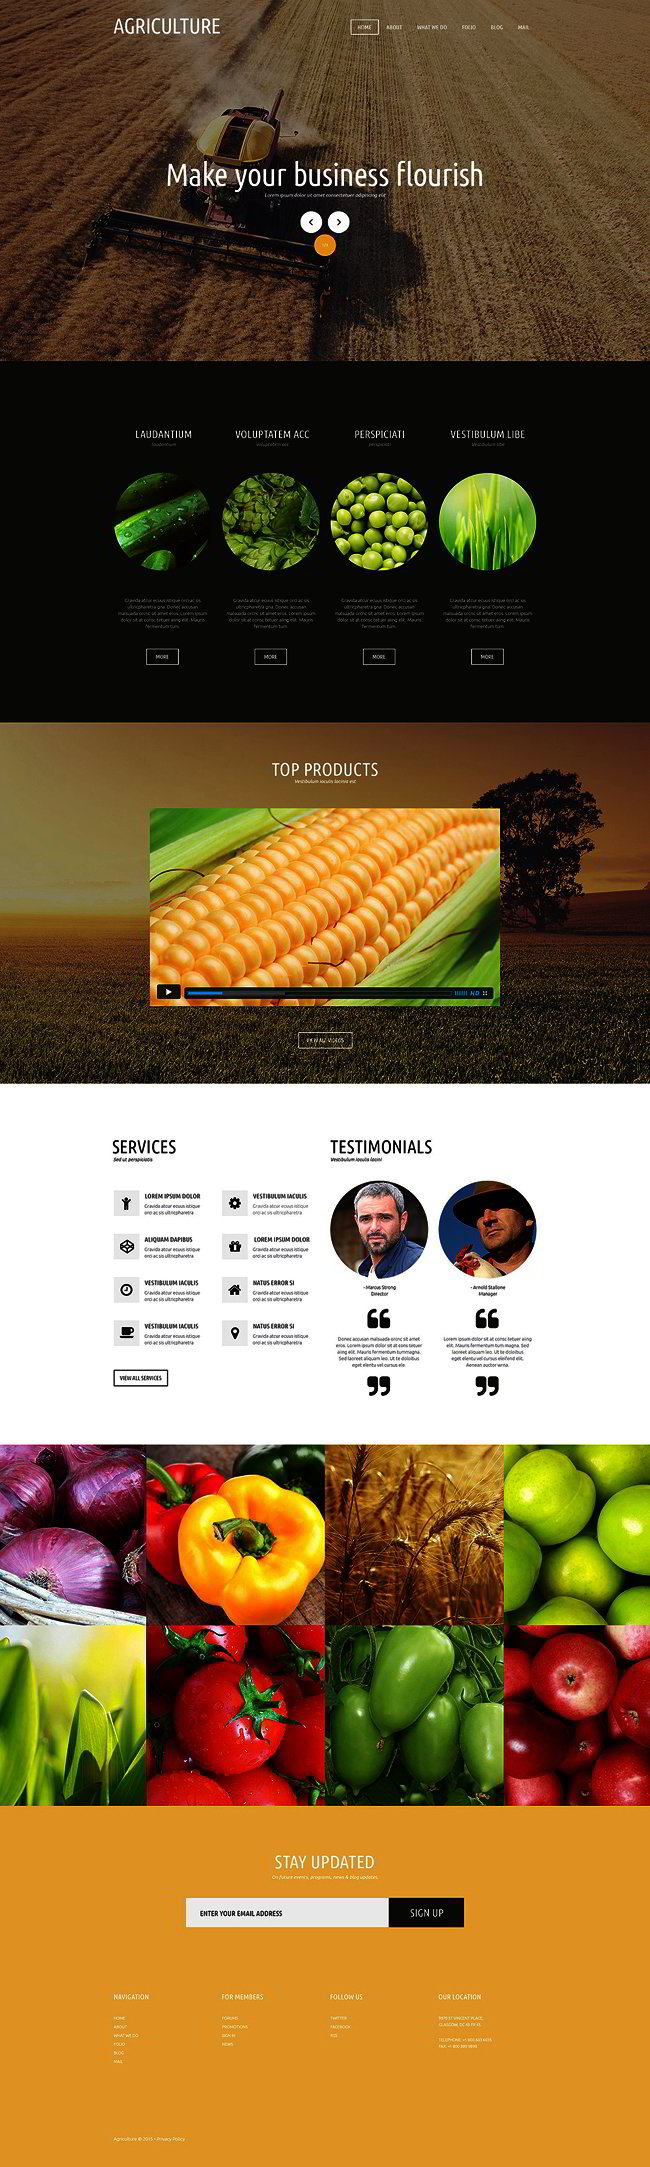 Agriculture Joomla Theme